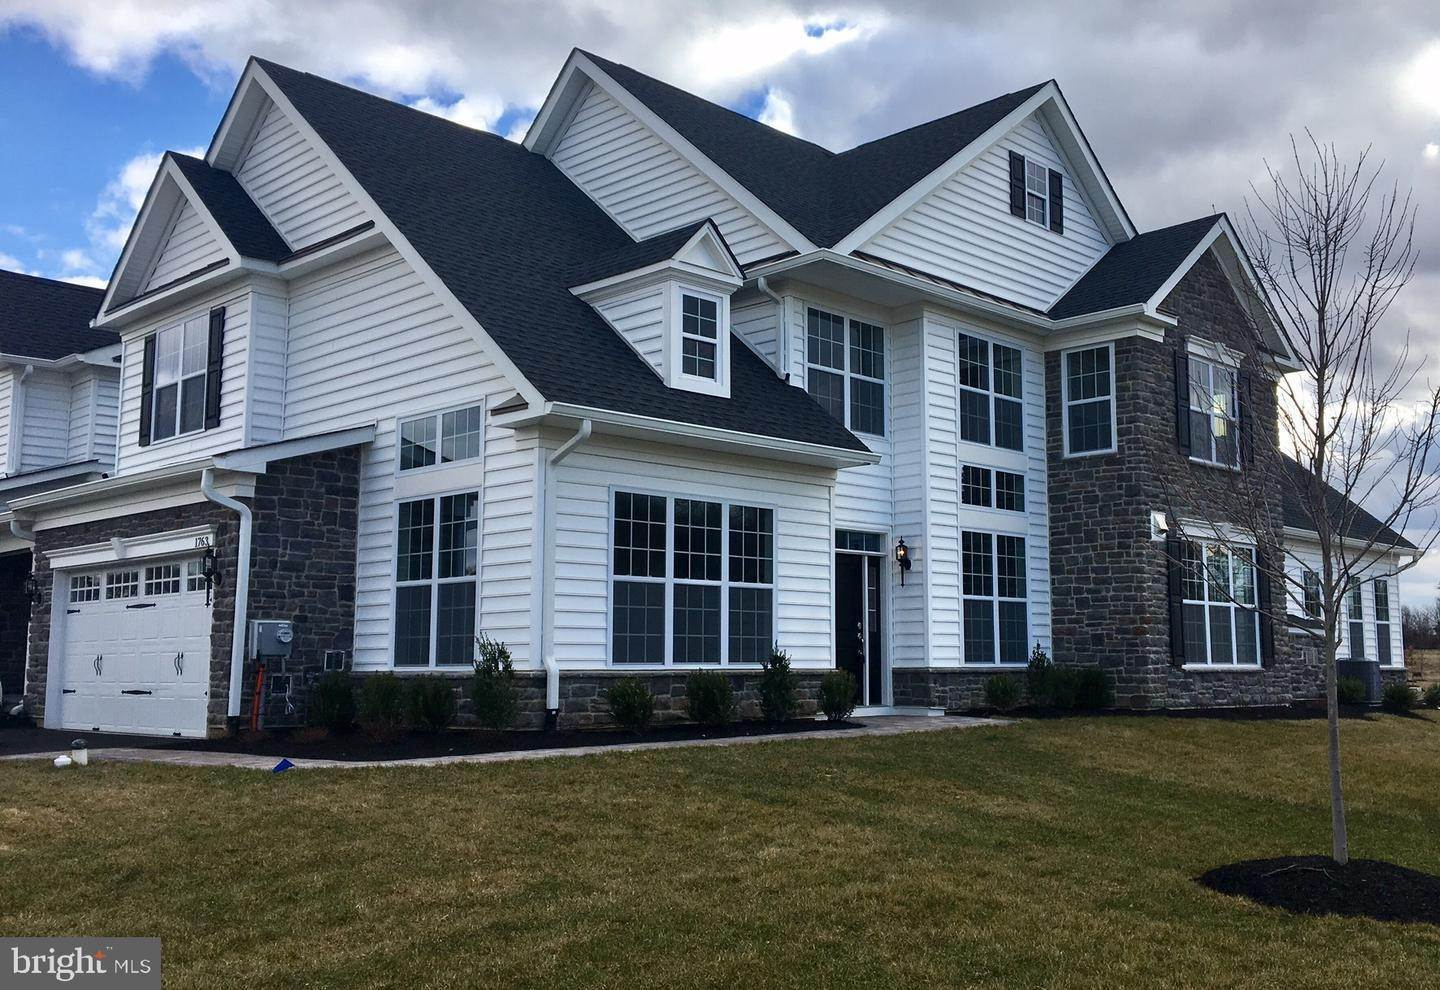 townhouses for Sale at 105 LAVENDER Drive Yardley, Pennsylvania 19067 United States